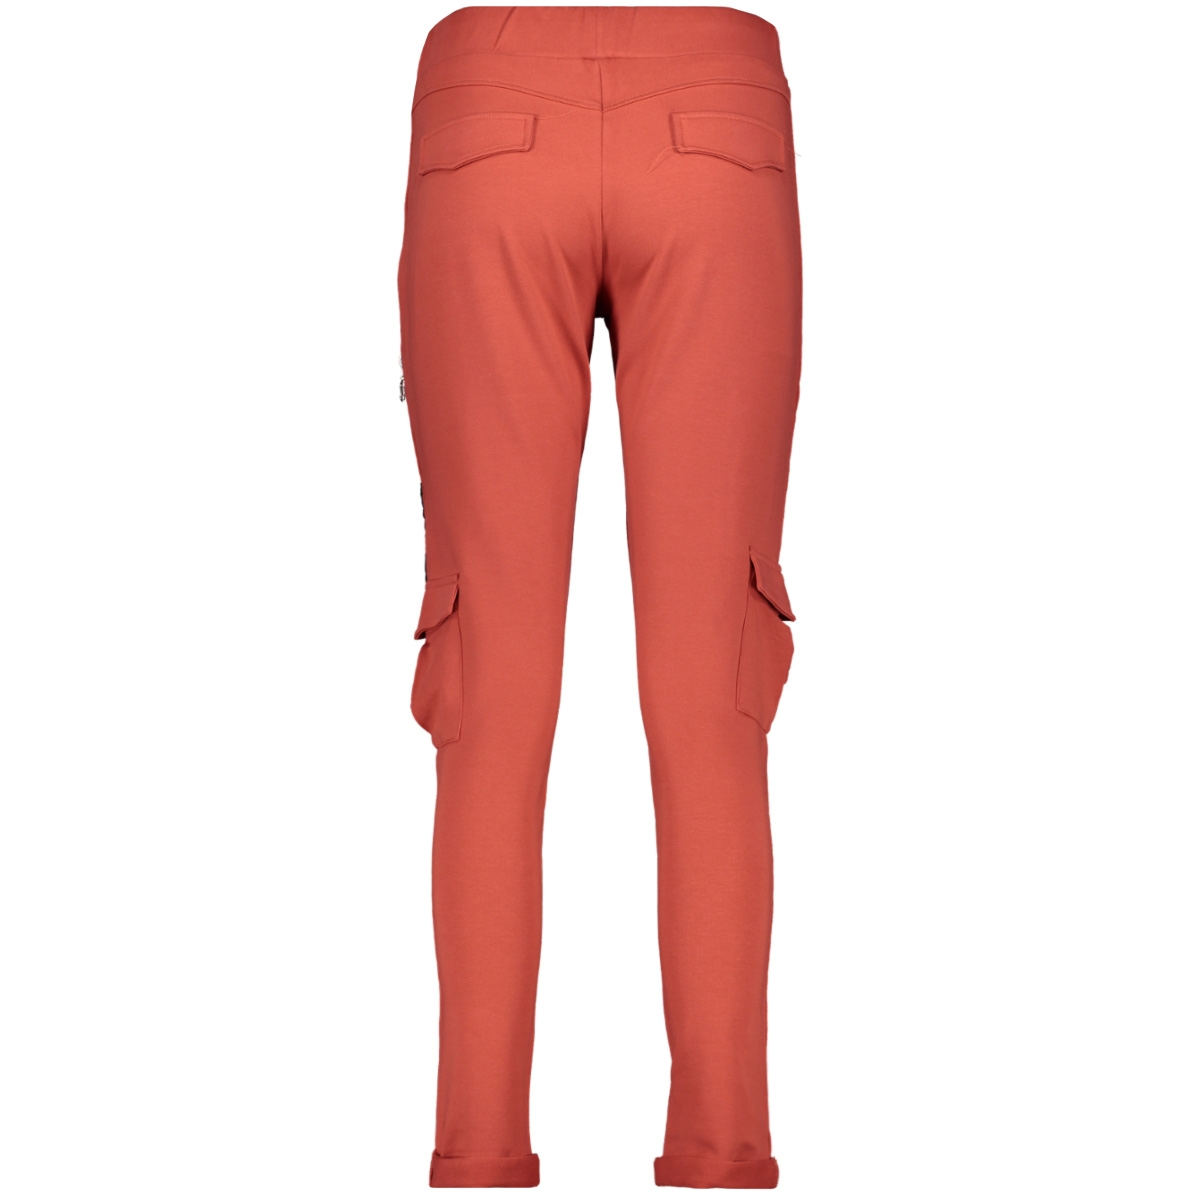 paloma trouser with detail 201 zoso broek 0072 desert red